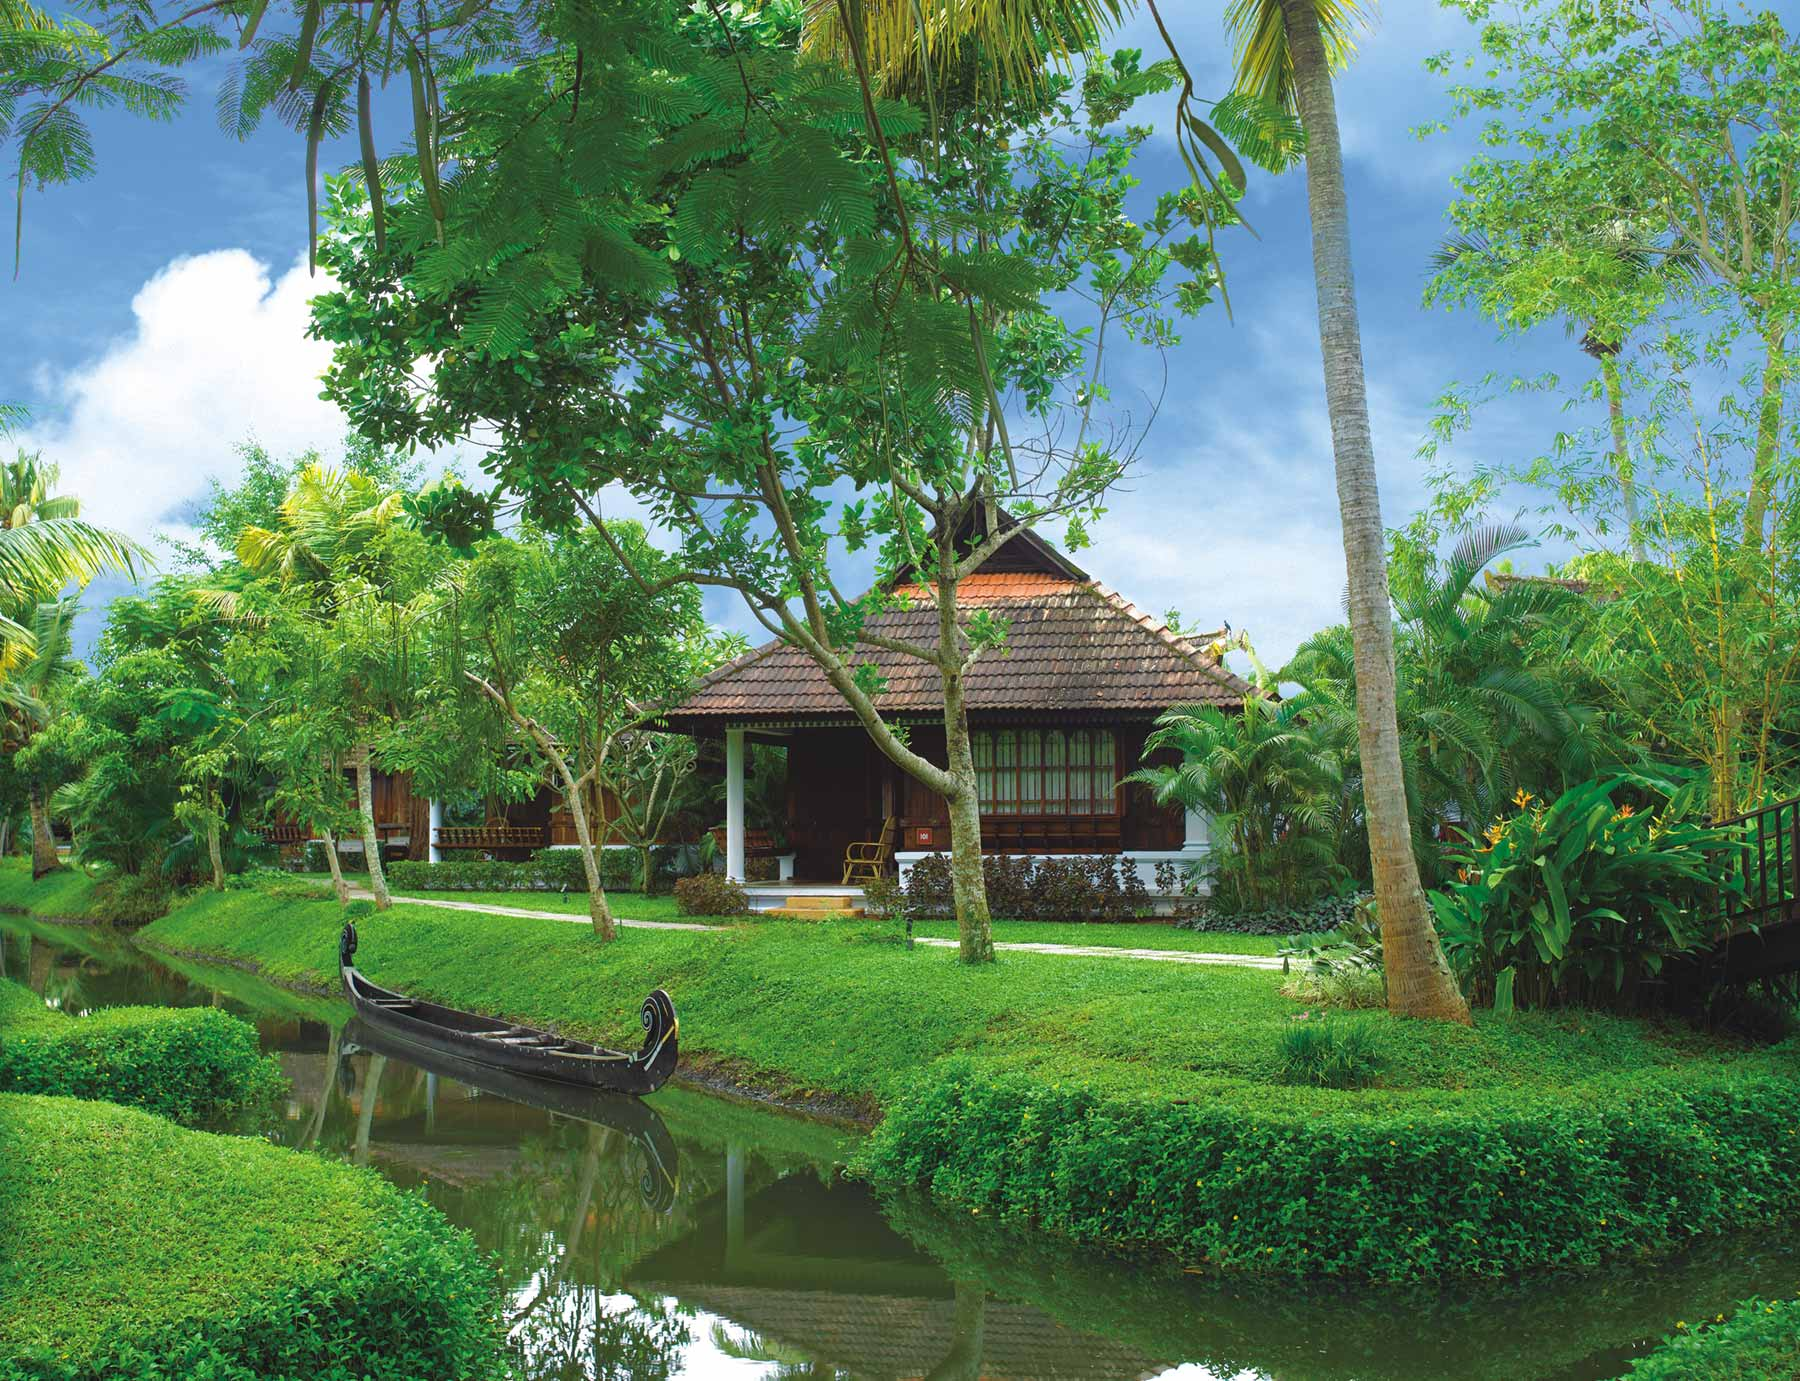 Kerala is blessed with lush greenery all year round.